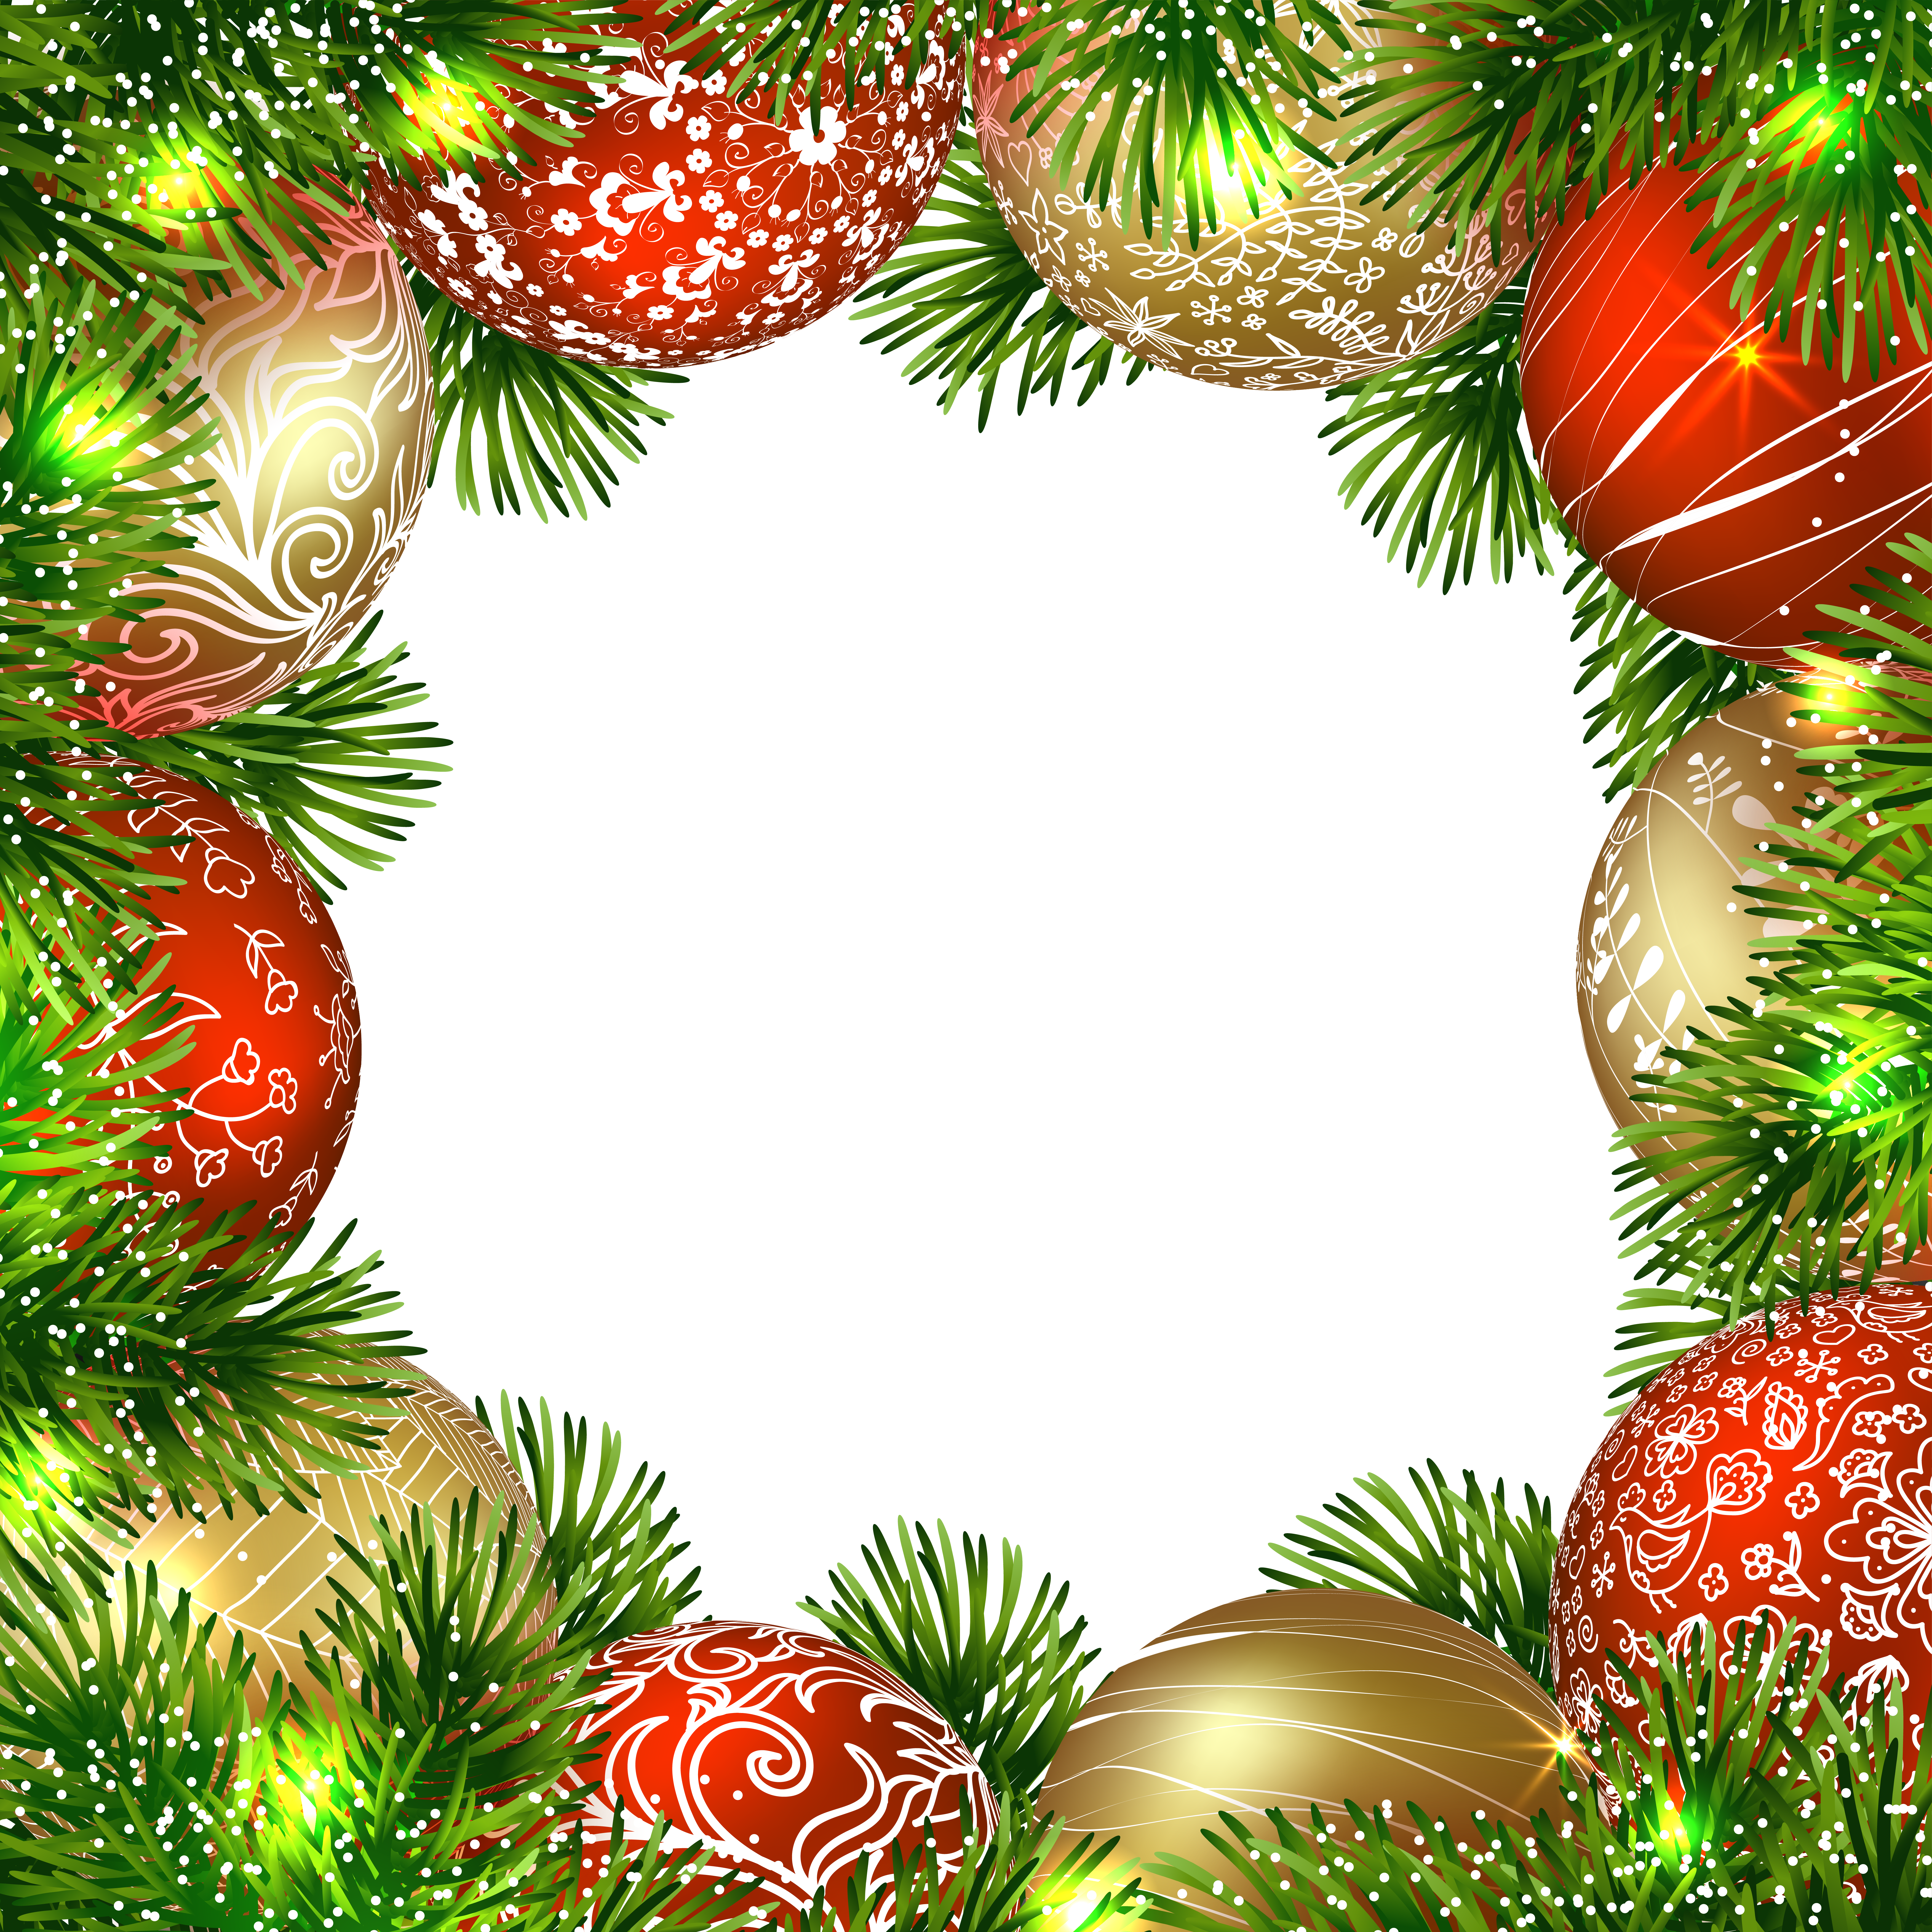 Holiday border ornaments png. Transparent christmas frame with